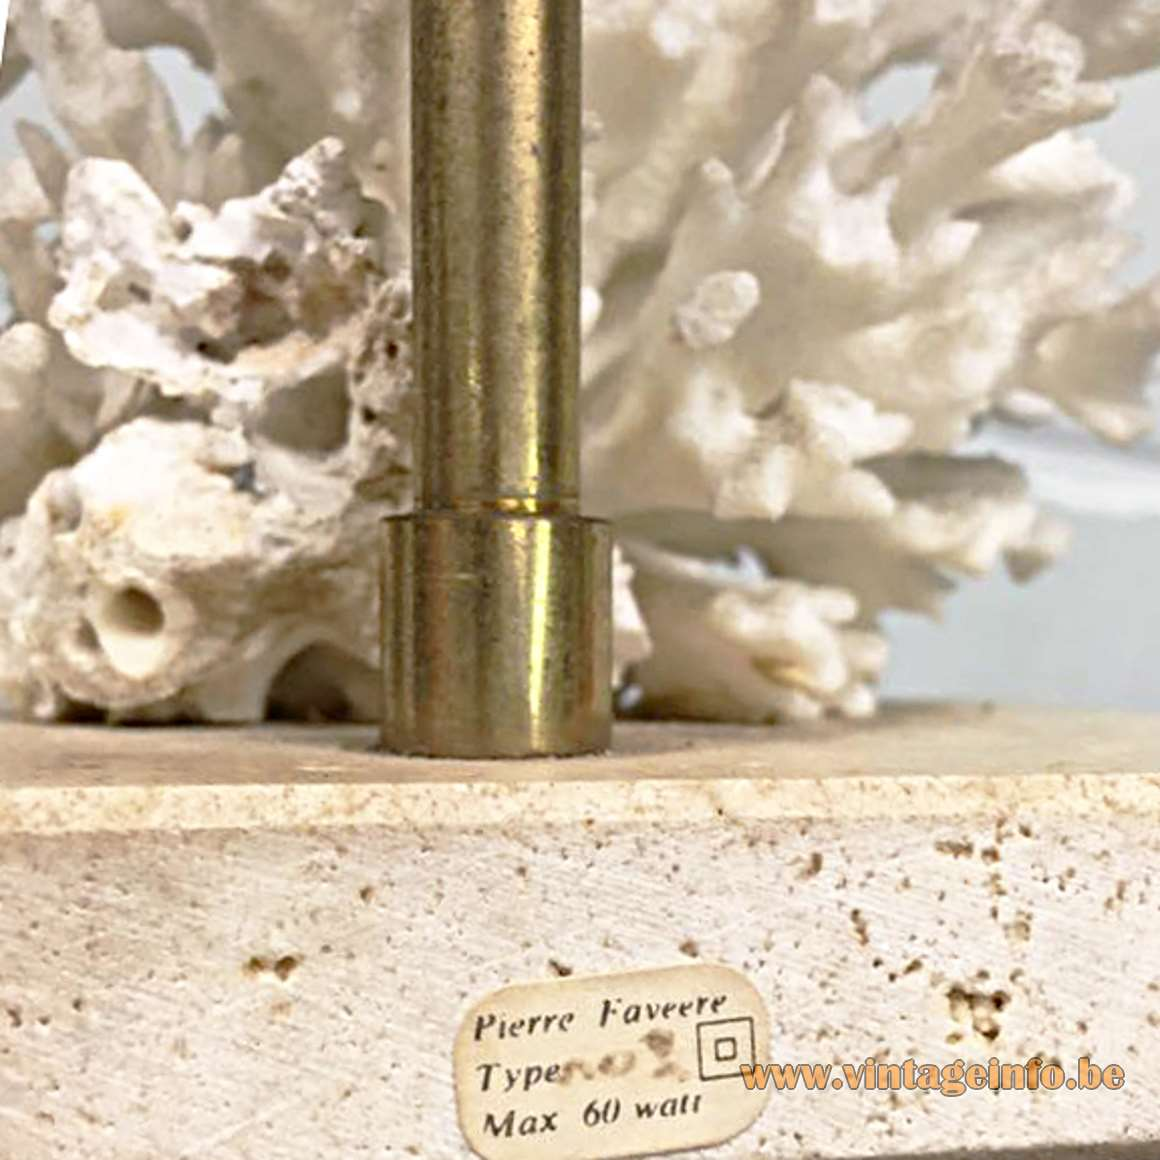 Pierre Faveere Agate Table Lamp - Coral lamp base and label